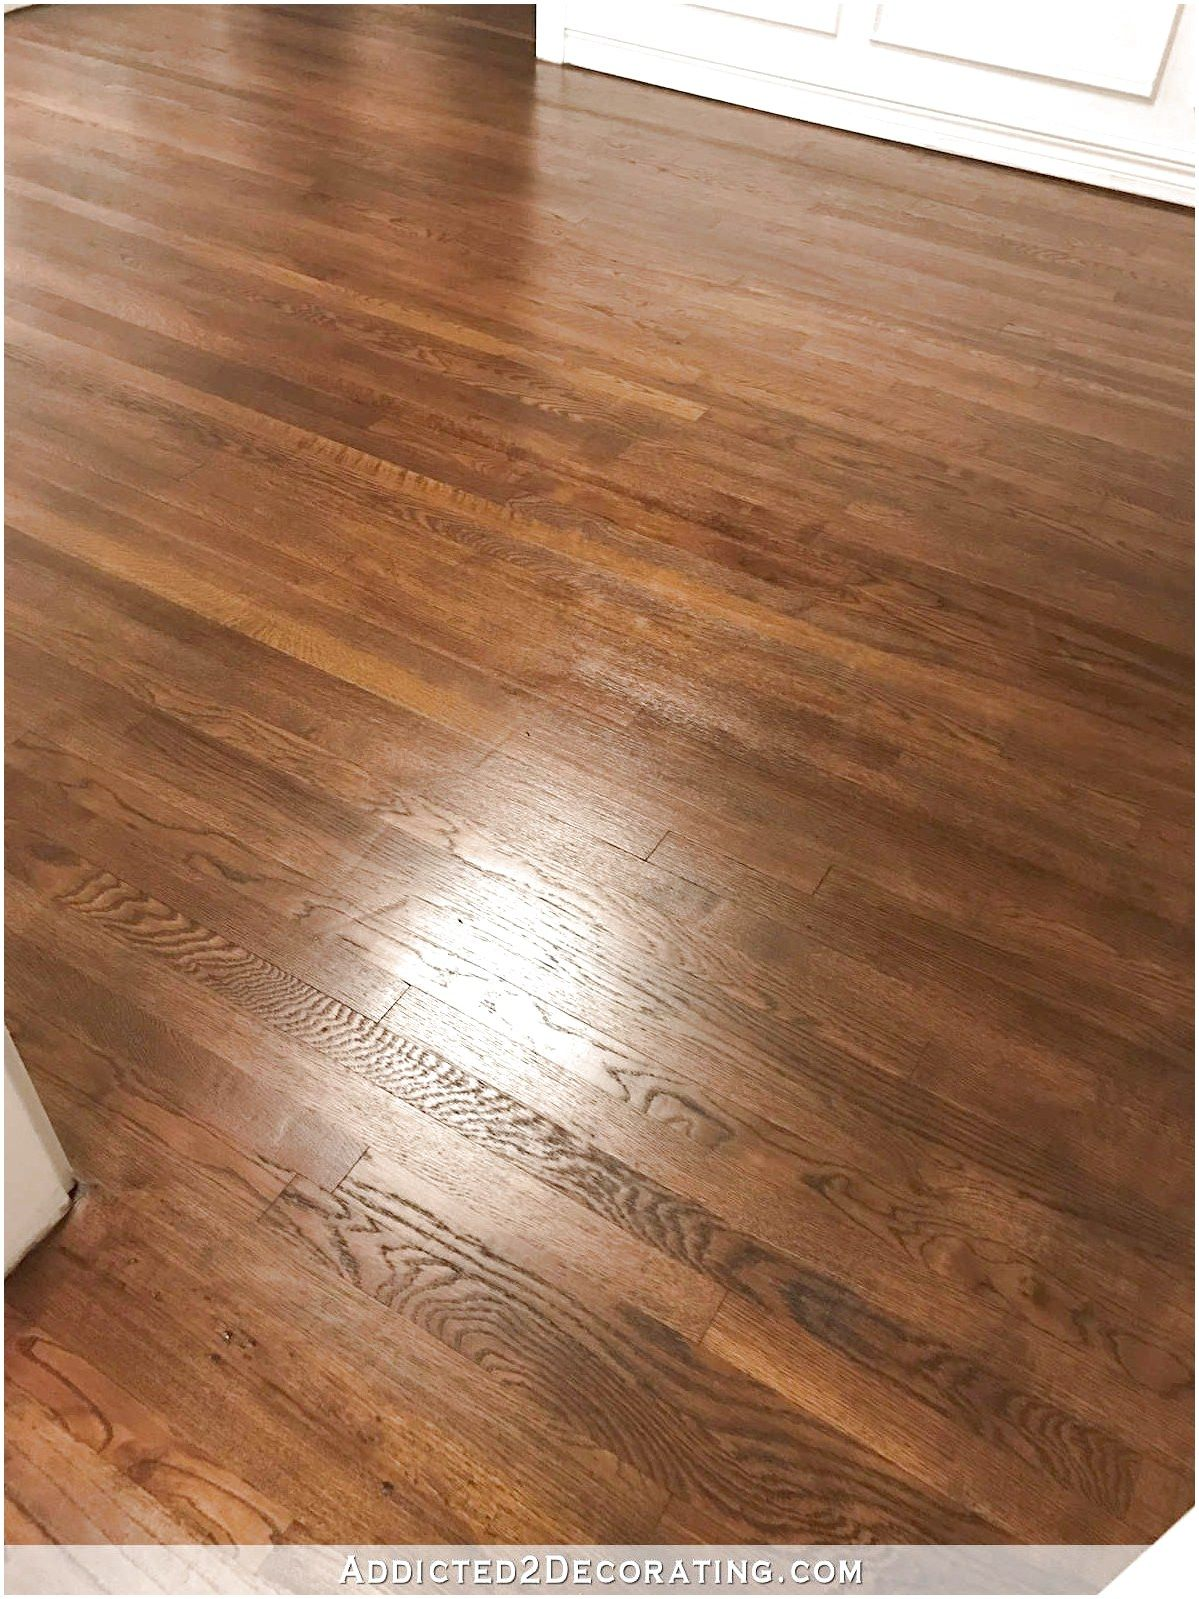 Different Designs For Your Floor Using Ceramics Oak Hardwood Flooring Oak Wood Floors Wood Floor Stain Colors